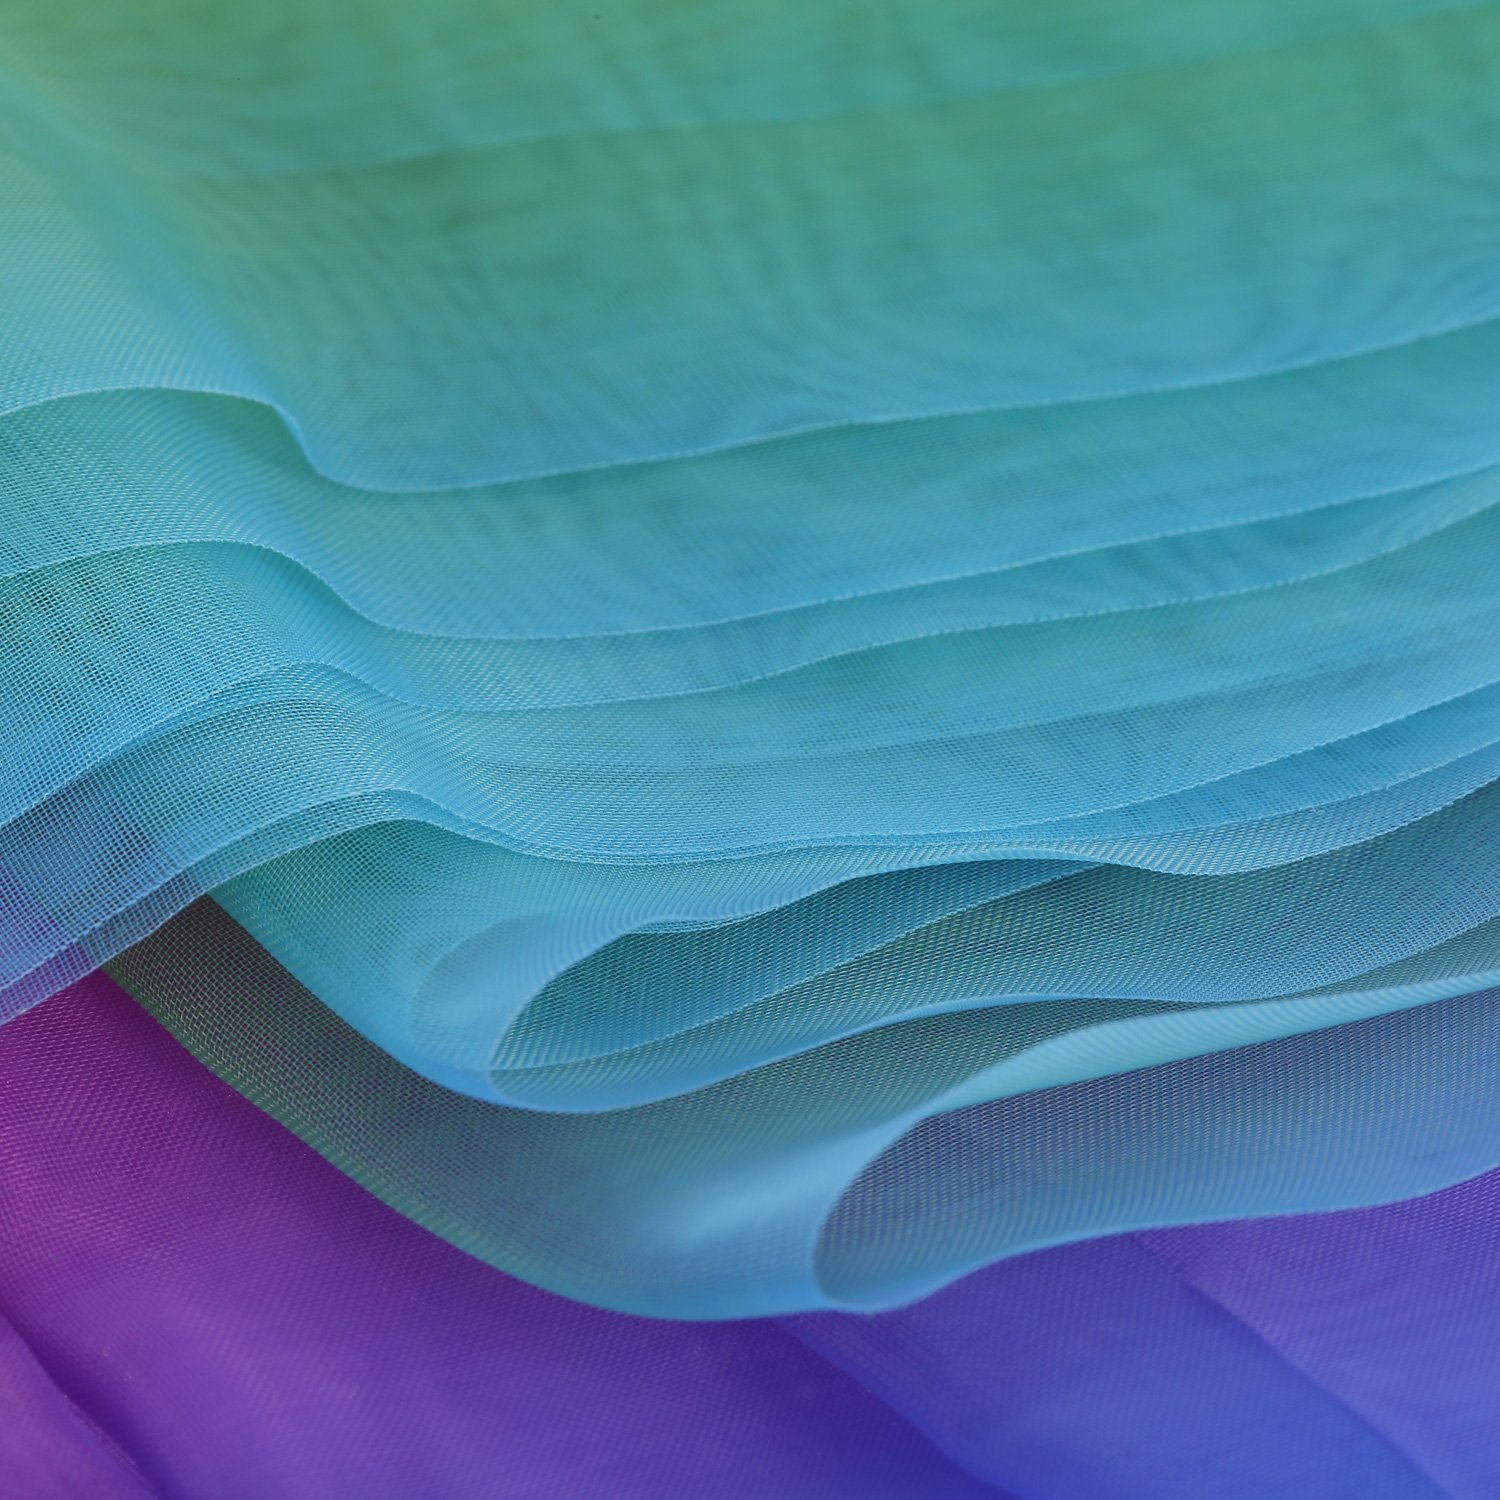 BBTO 16 Feet by 54 Inch Rainbow Organza Multicolored Voile Dress Fabric Fancy Costumes Decorations by BBTO (Image #5)